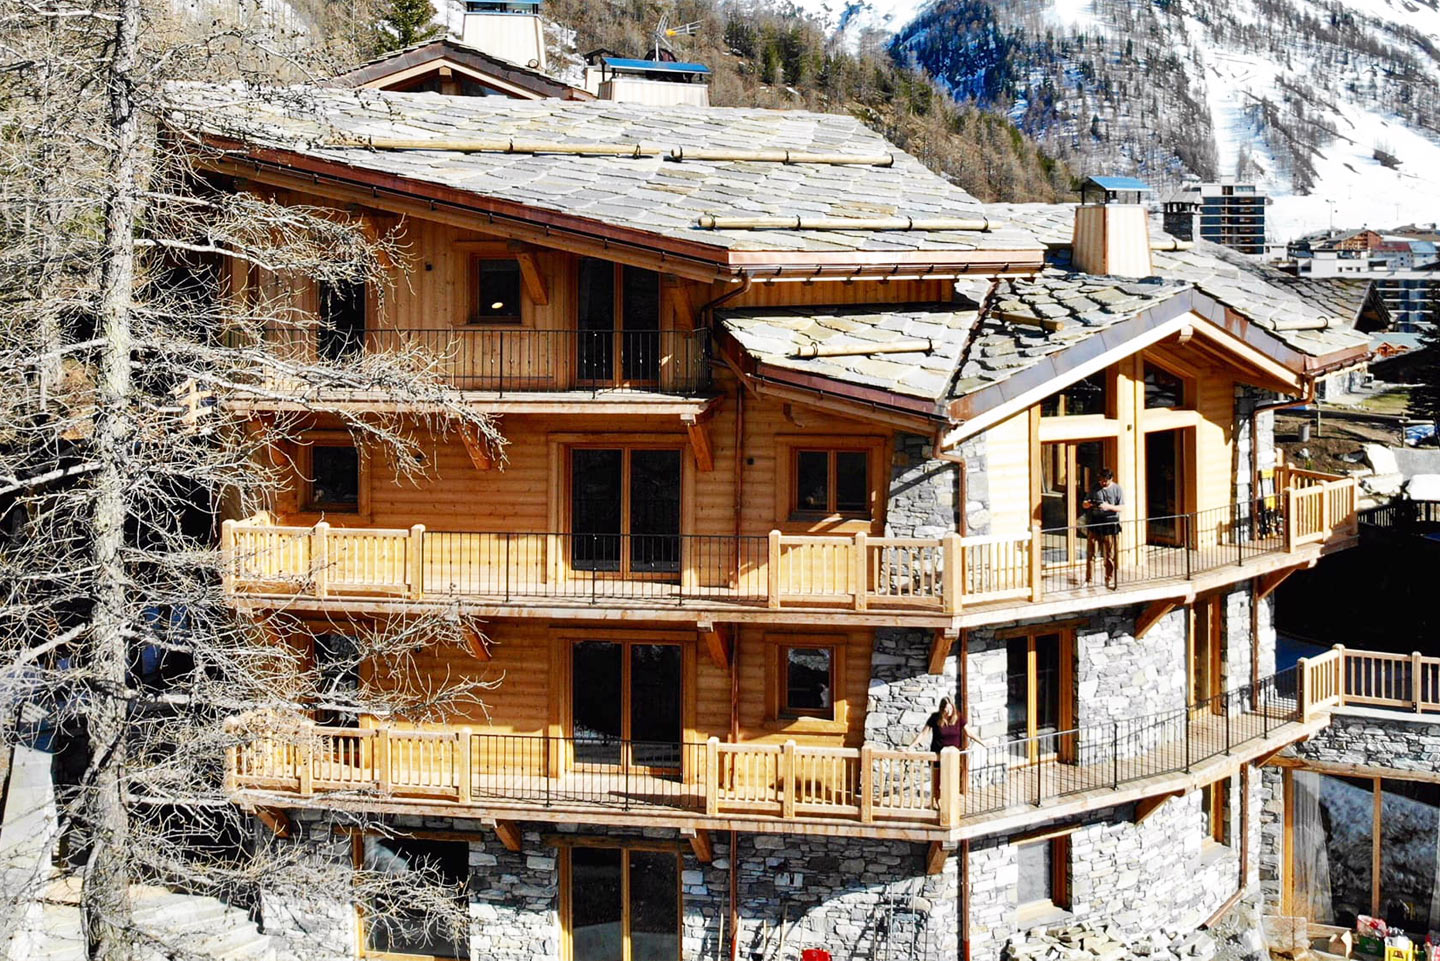 chalet-ovalala-val-disere-outside-view